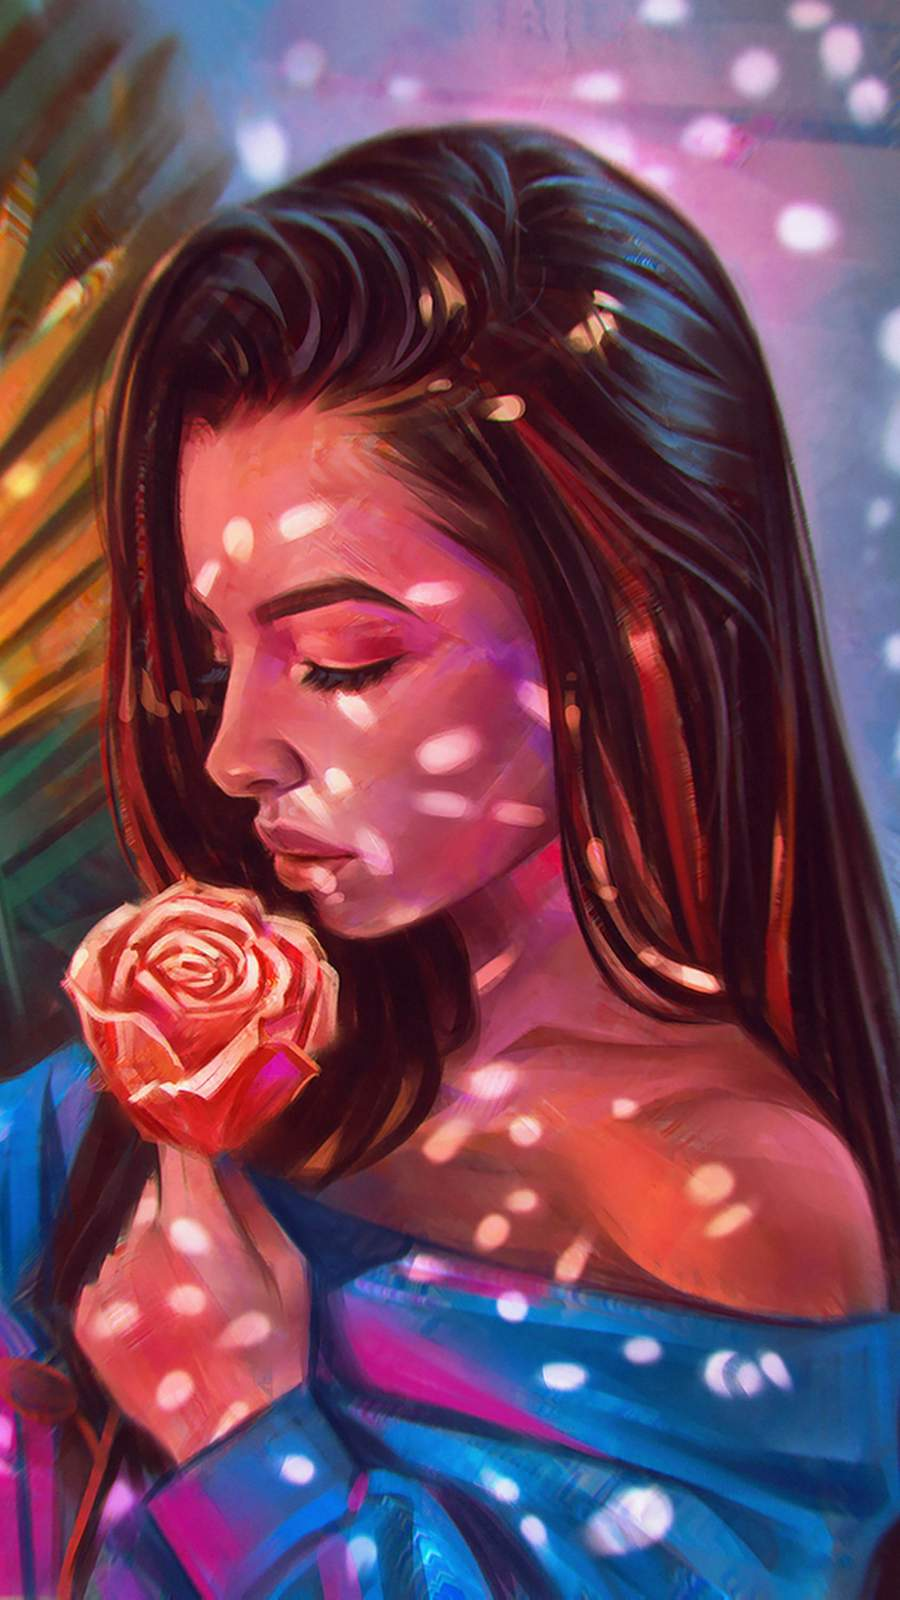 Girl with Rose Art